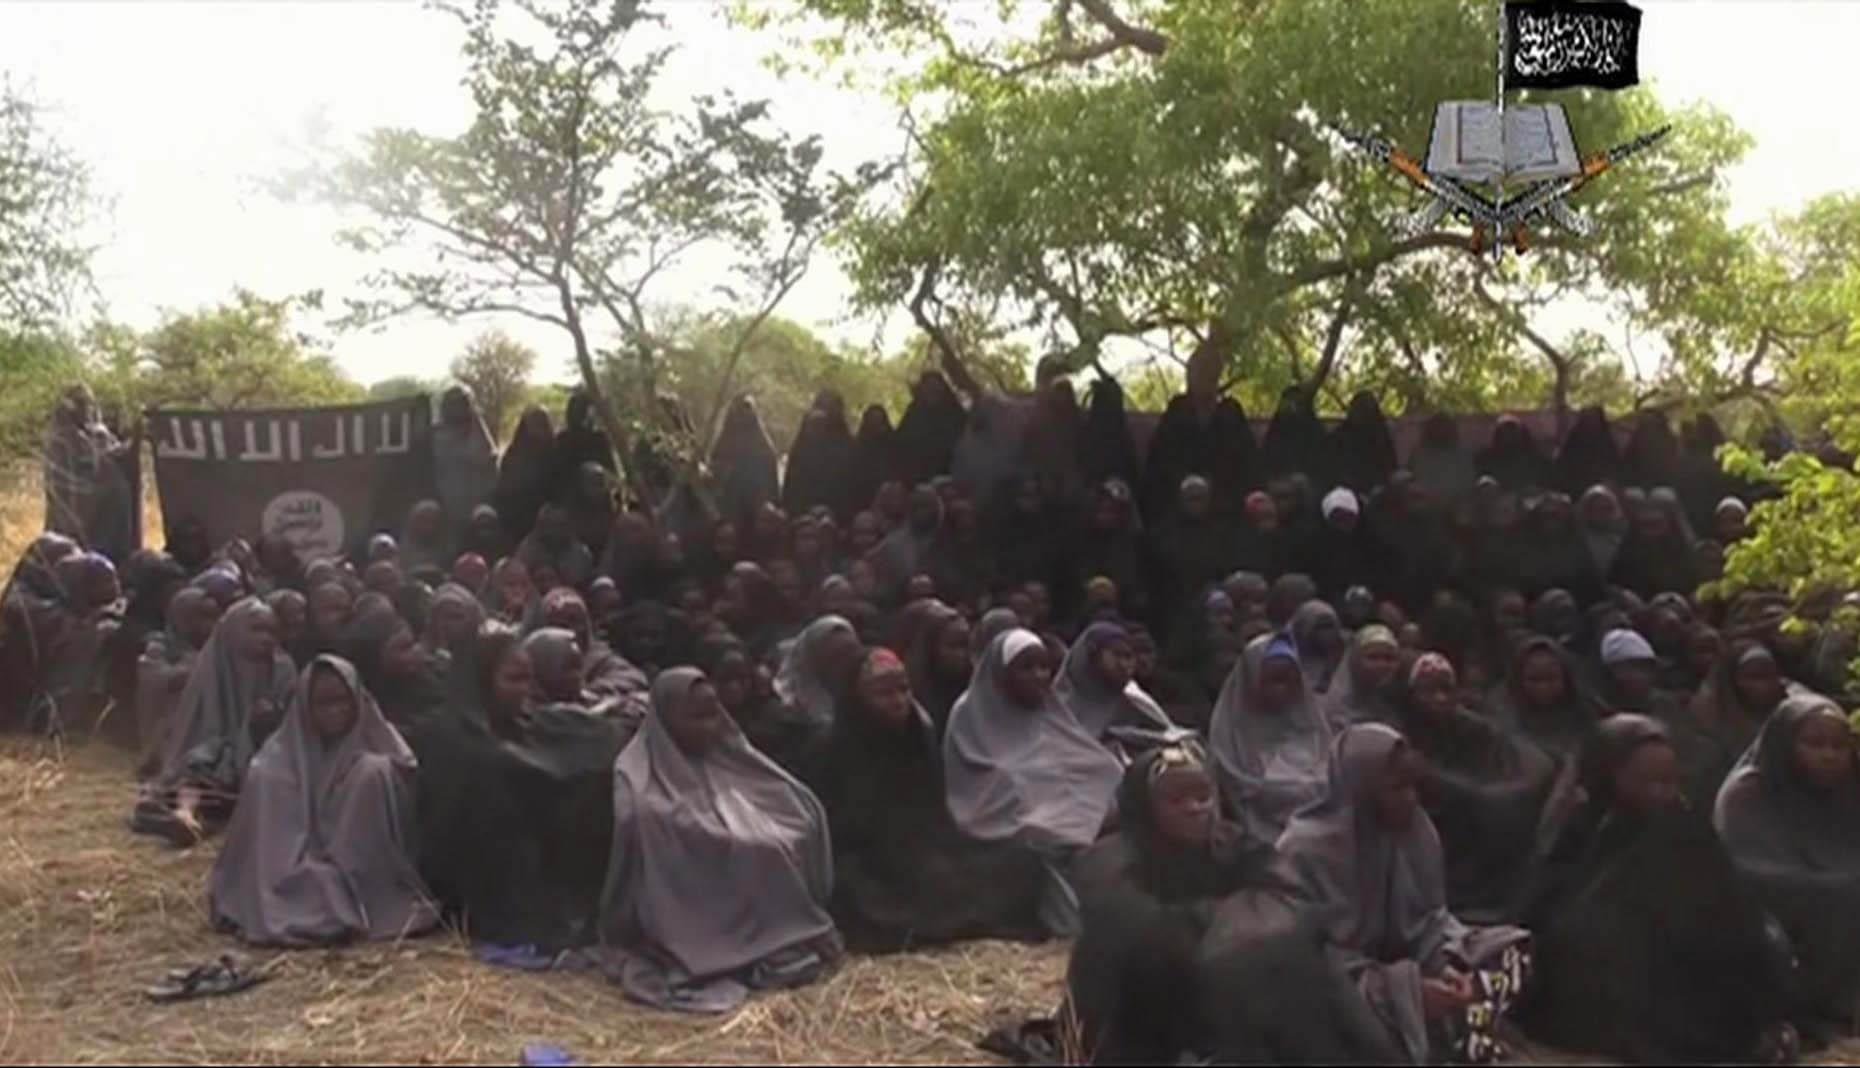 Video shows Boko Haram killing captives